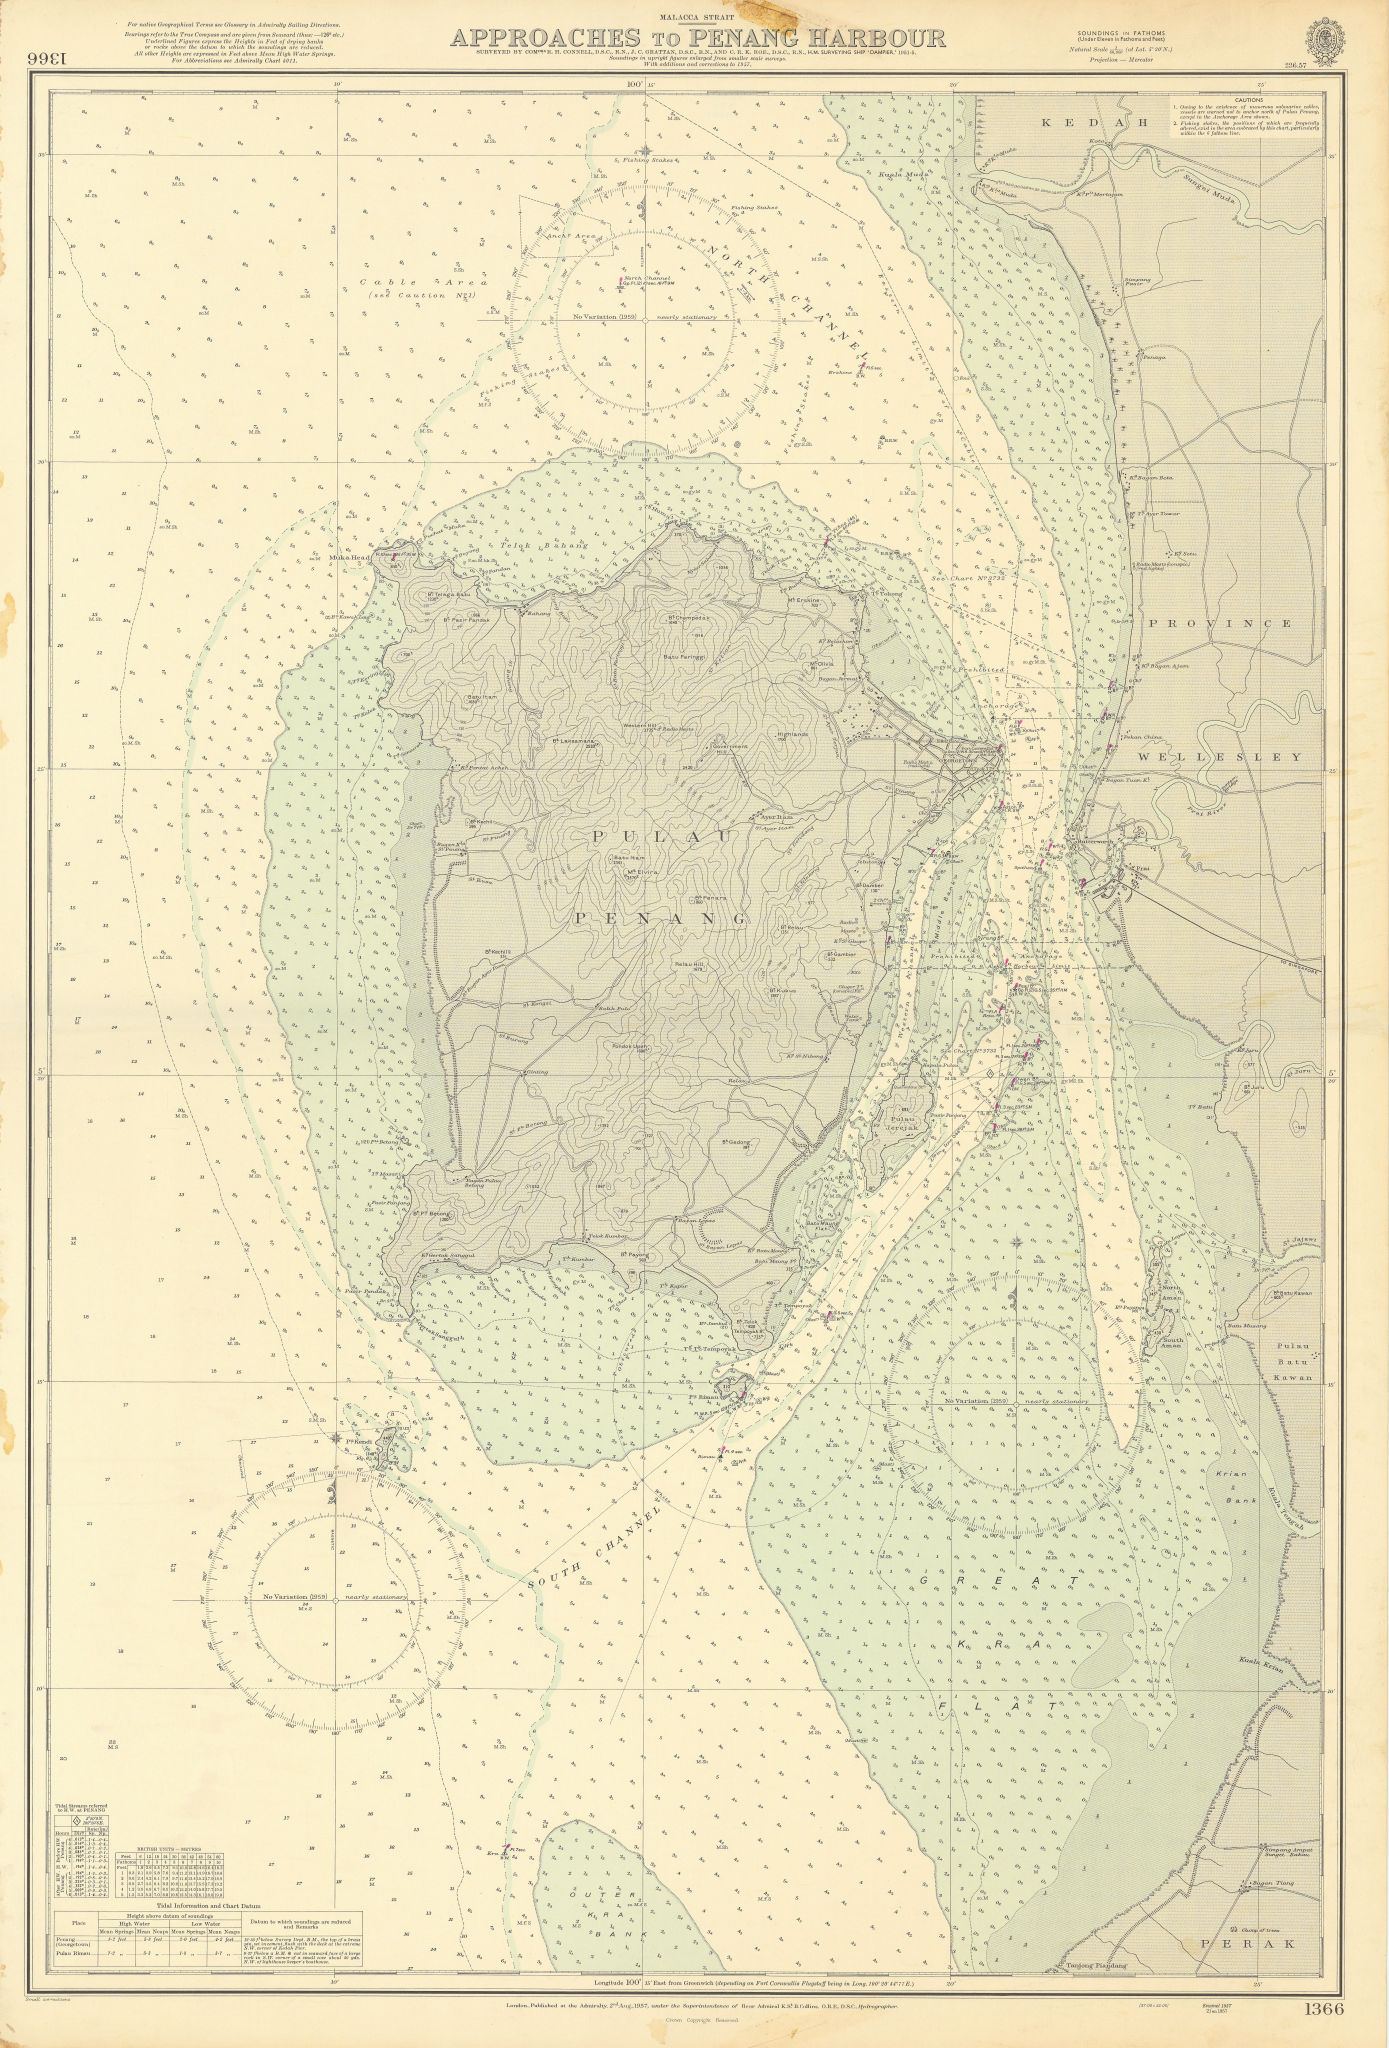 Penang Island & harbour approaches. Malaysia. ADMIRALTY sea chart 1957 old map